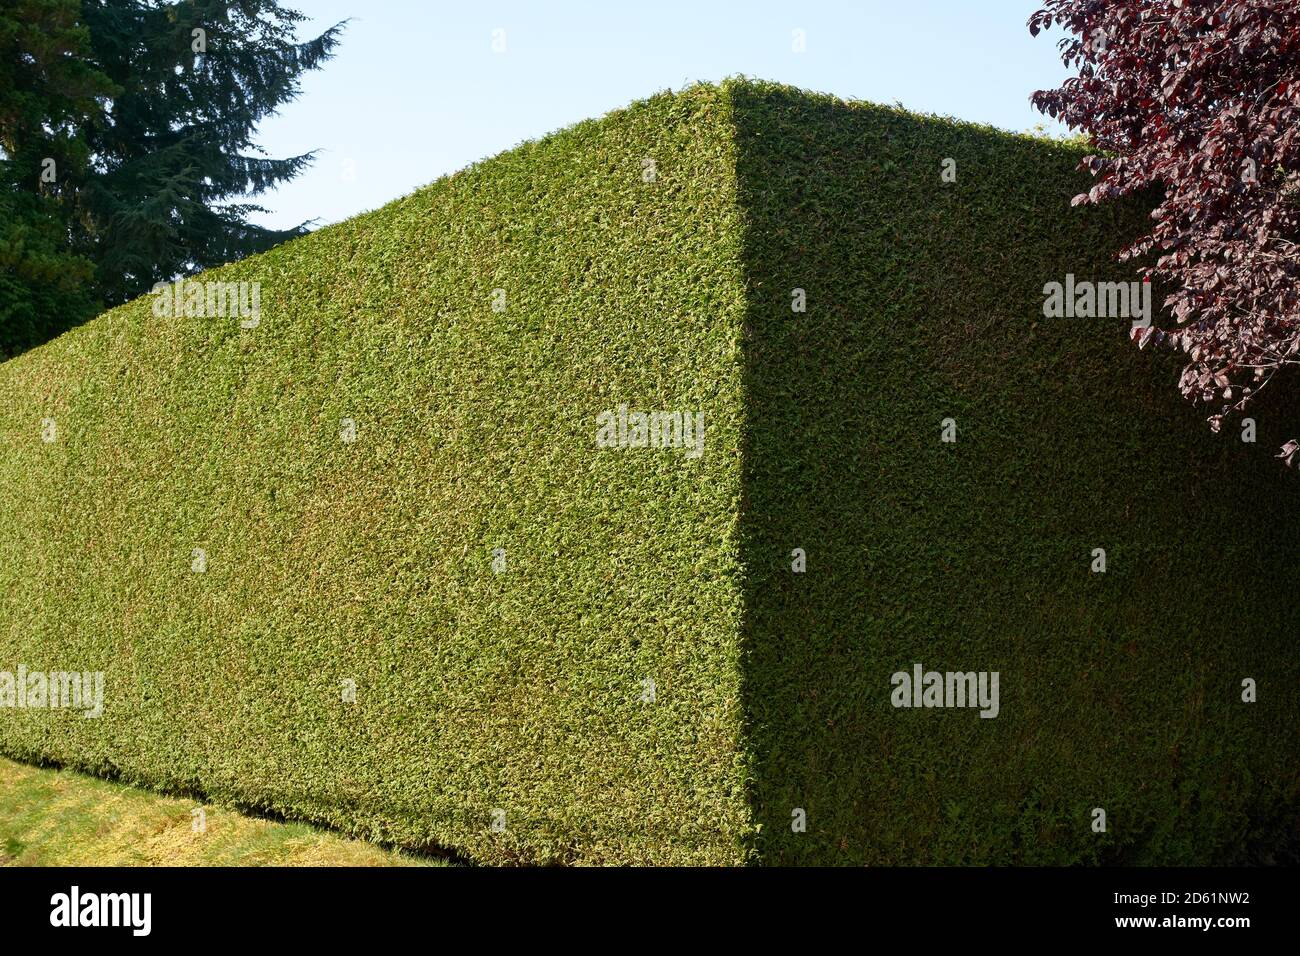 When Is The Best Time For Pruning Arborvitae Hedges Laidback Gardener